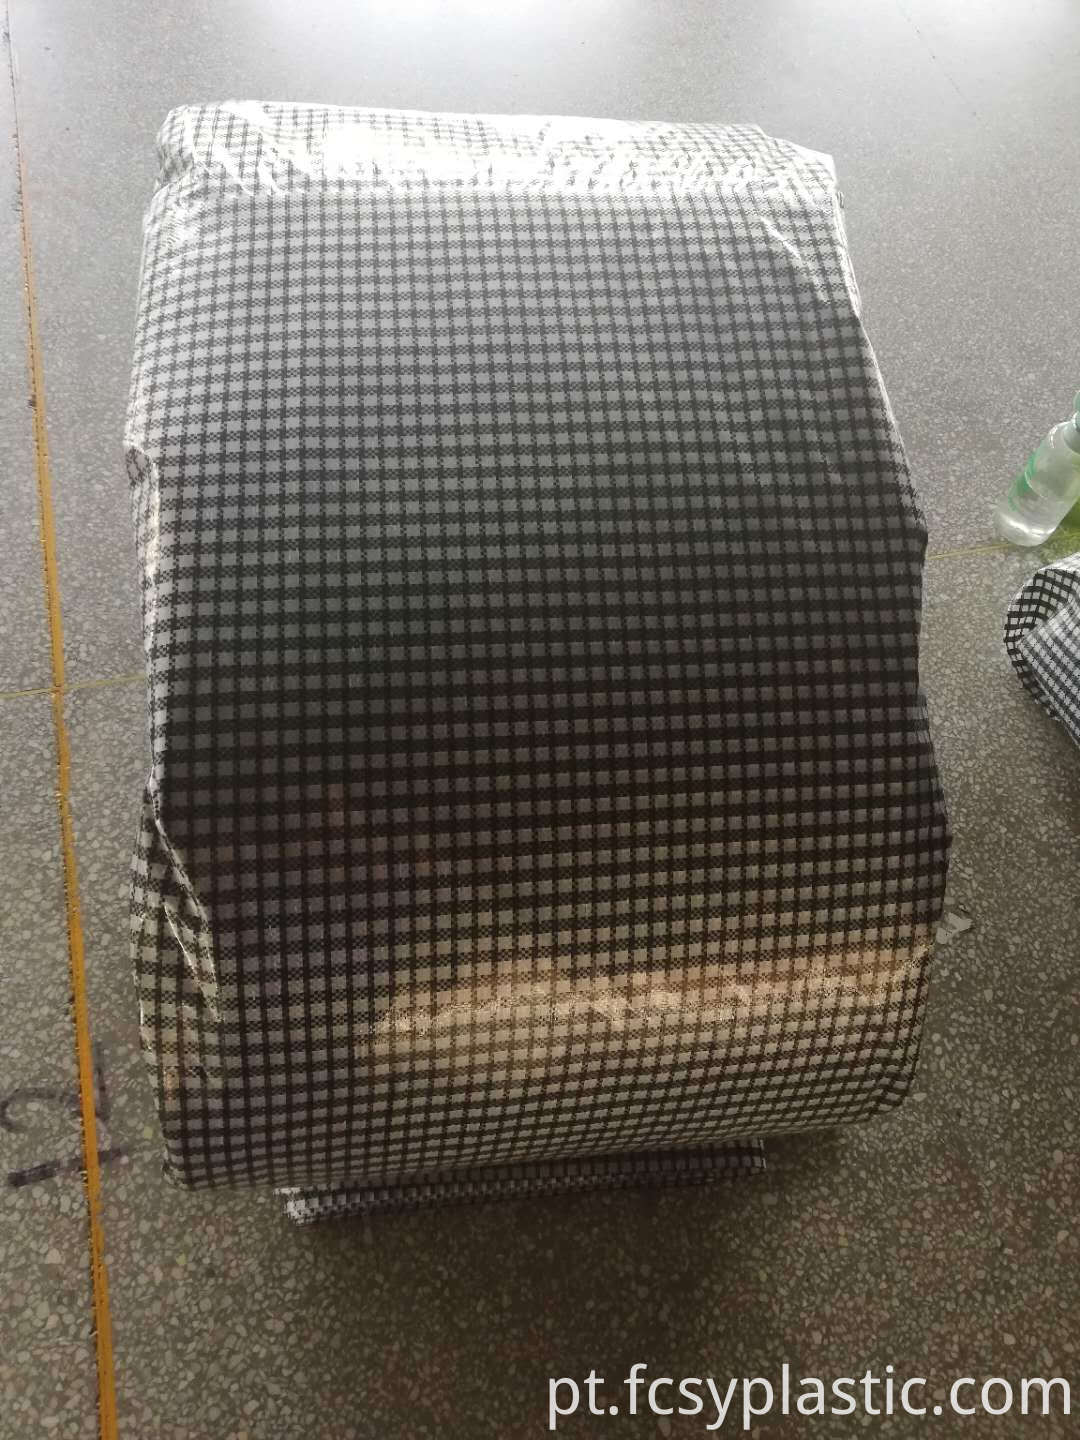 black grid woven film packing